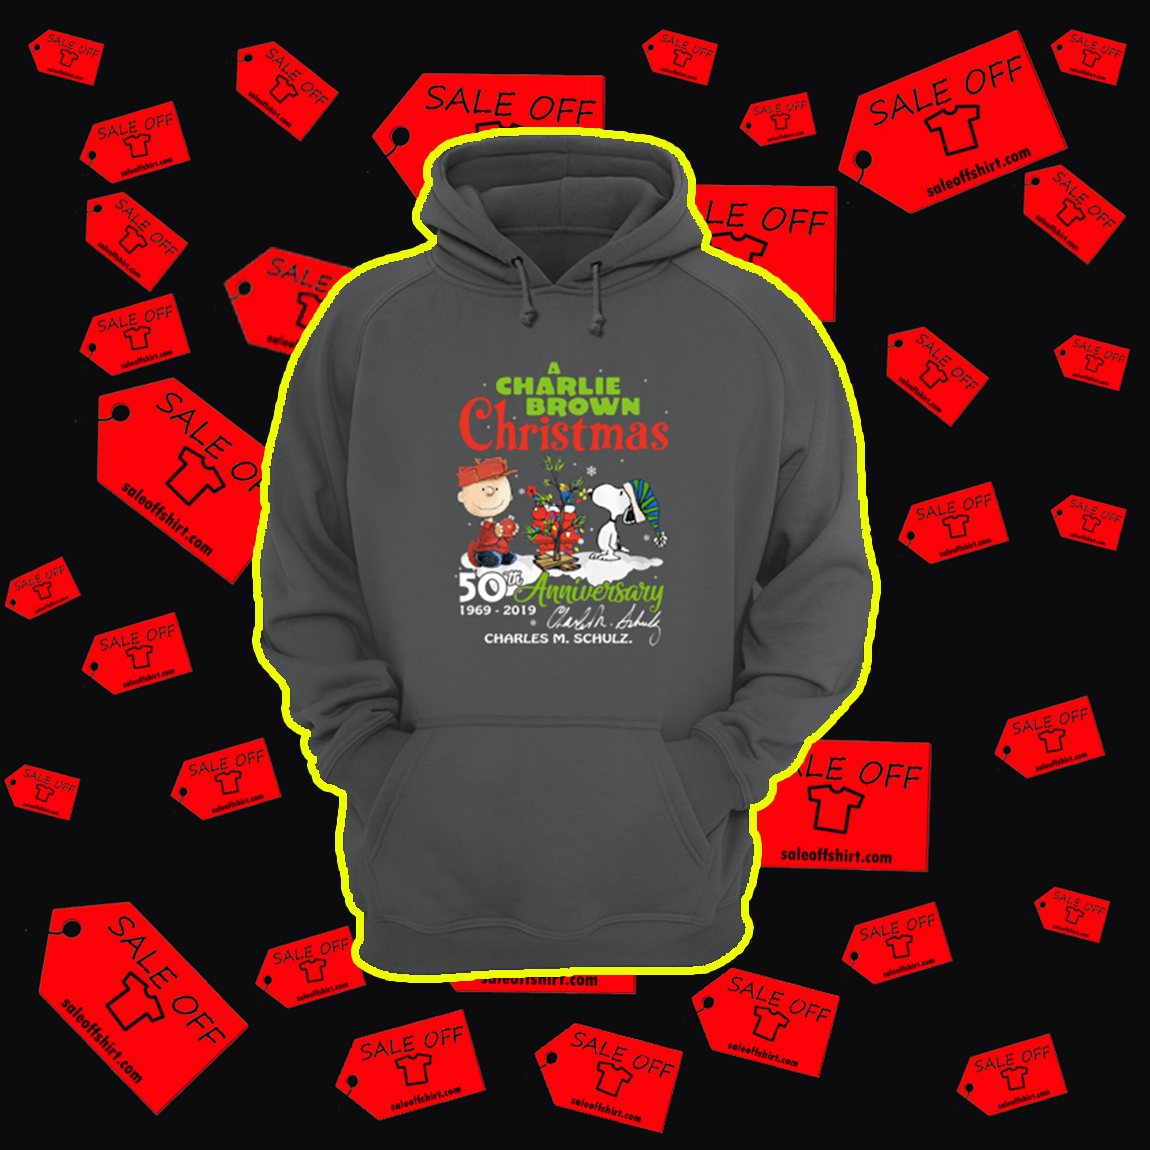 A Charlie Brown Christmas 50th Anniversary 1969 2019 hoodie